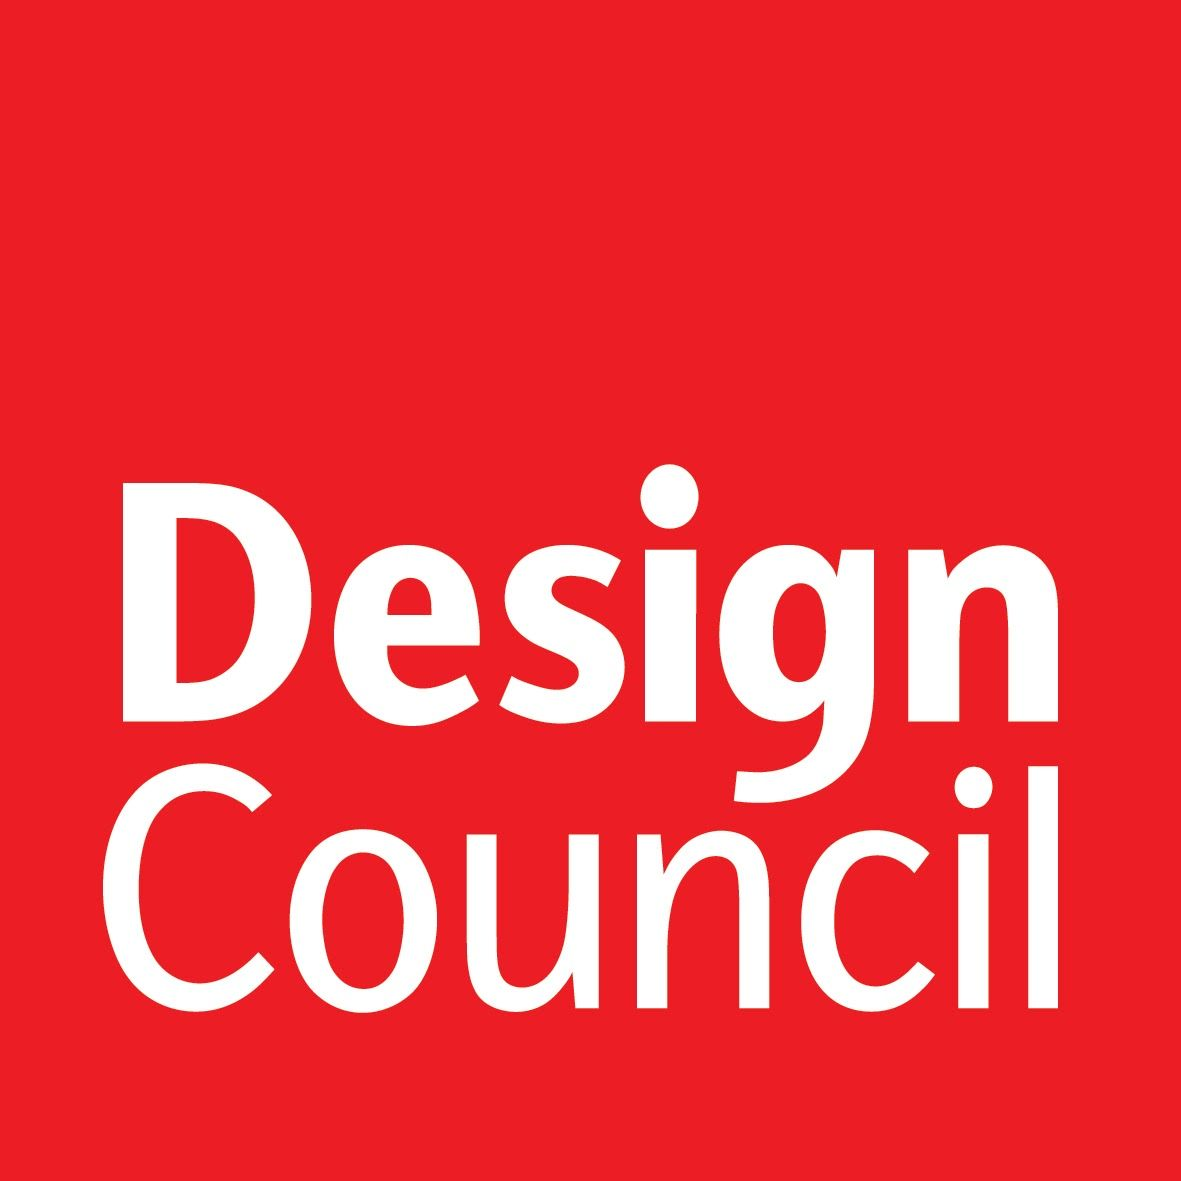 British Design Council